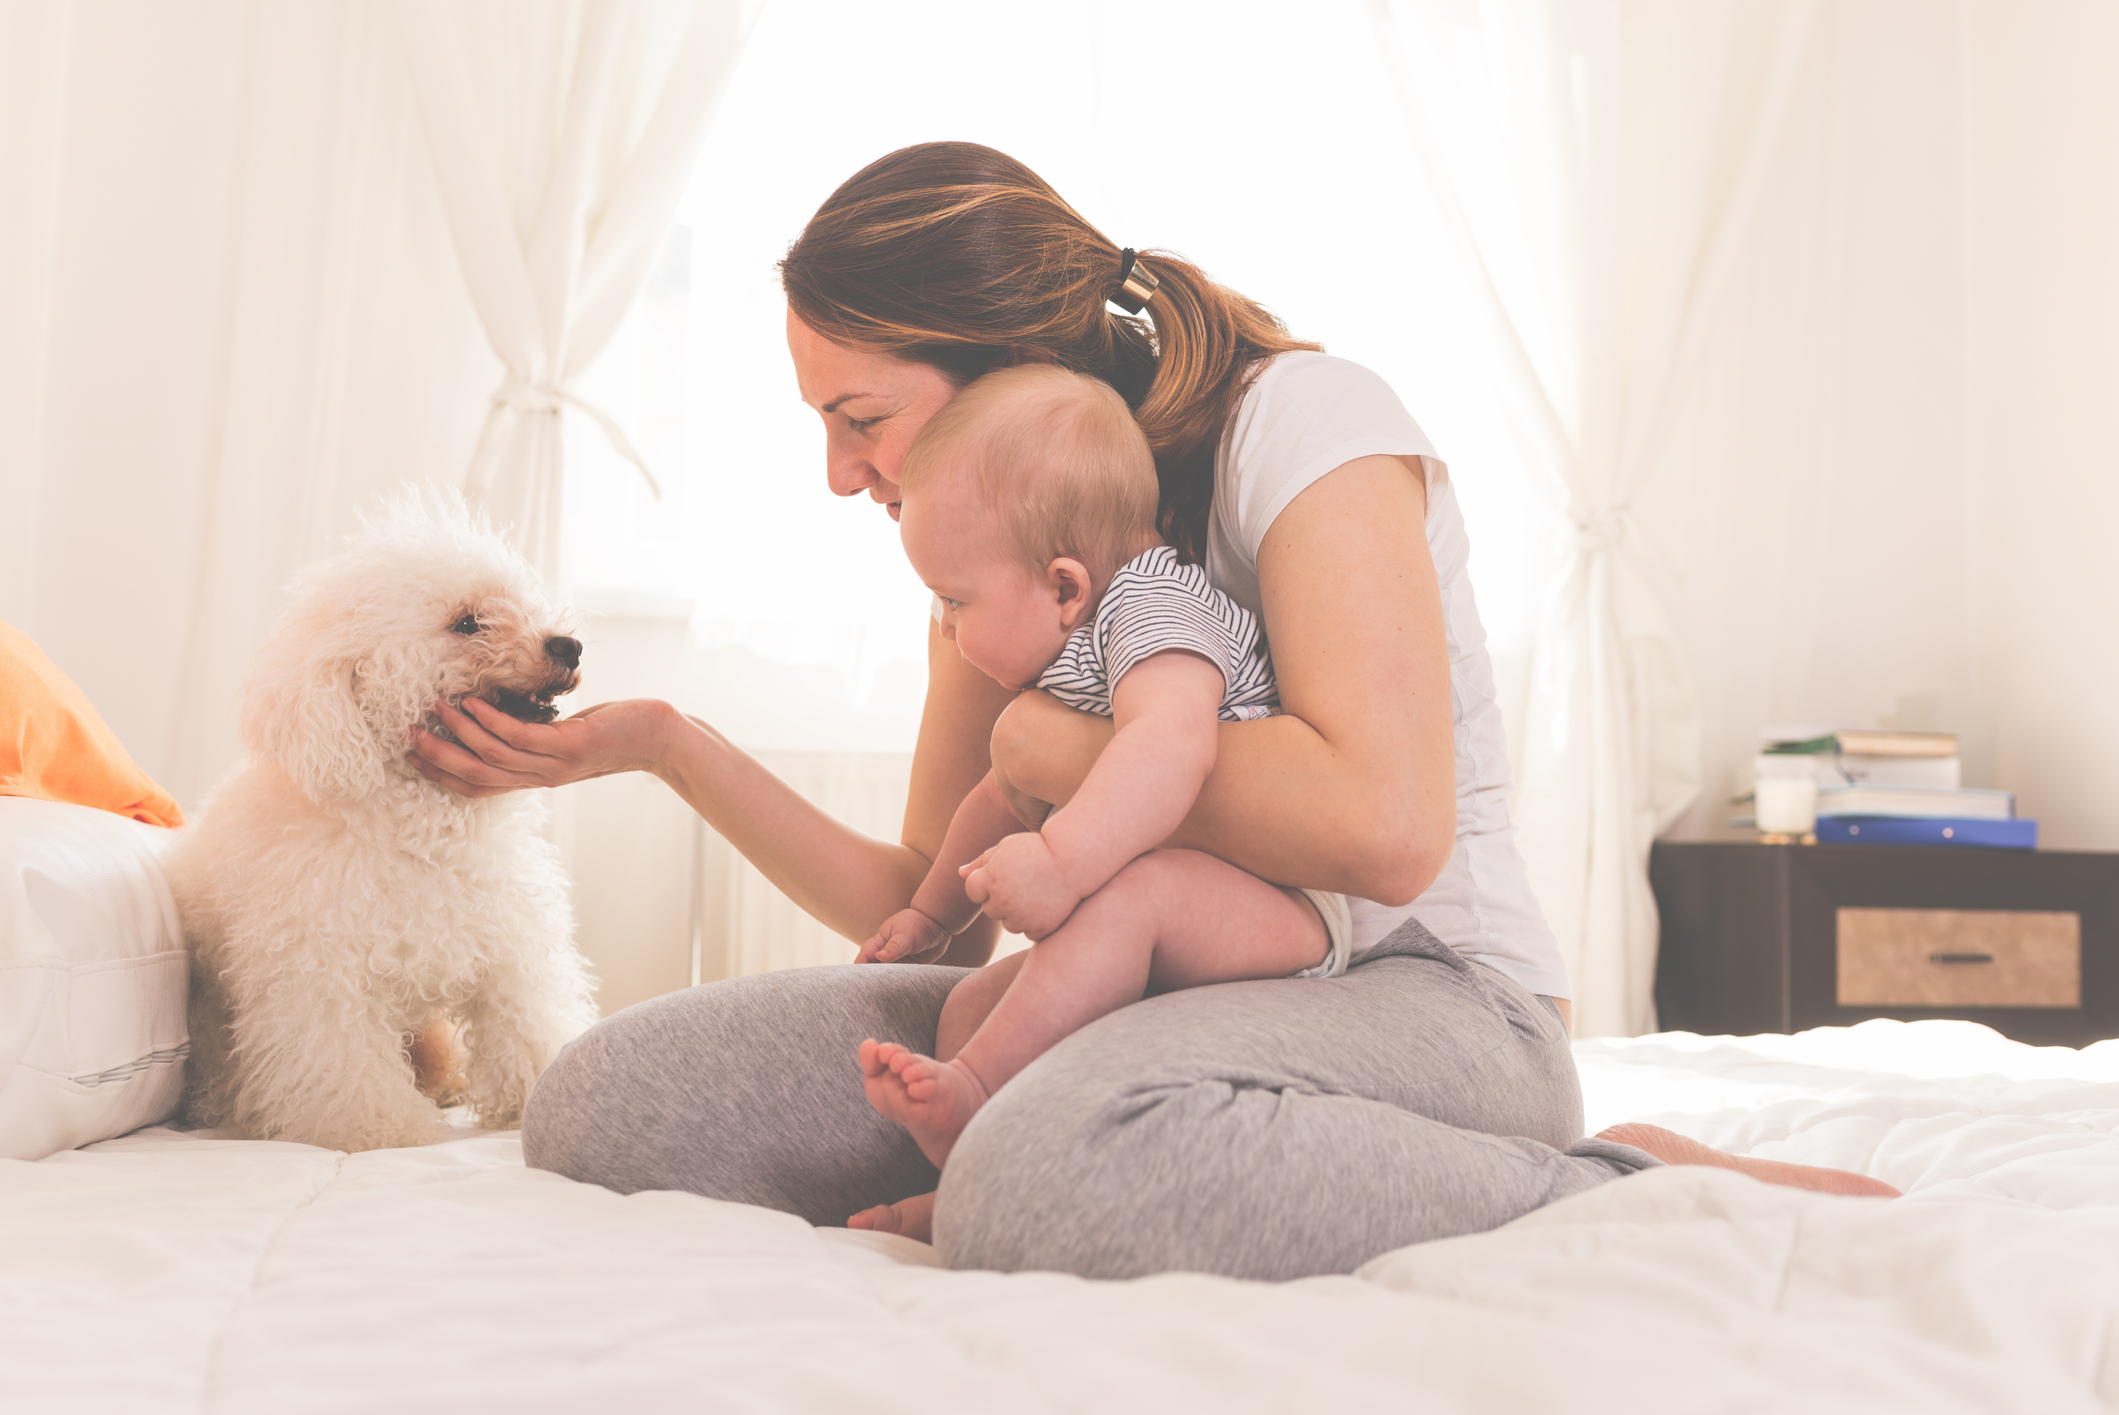 A new mom introduces her baby to the family dog on the bed